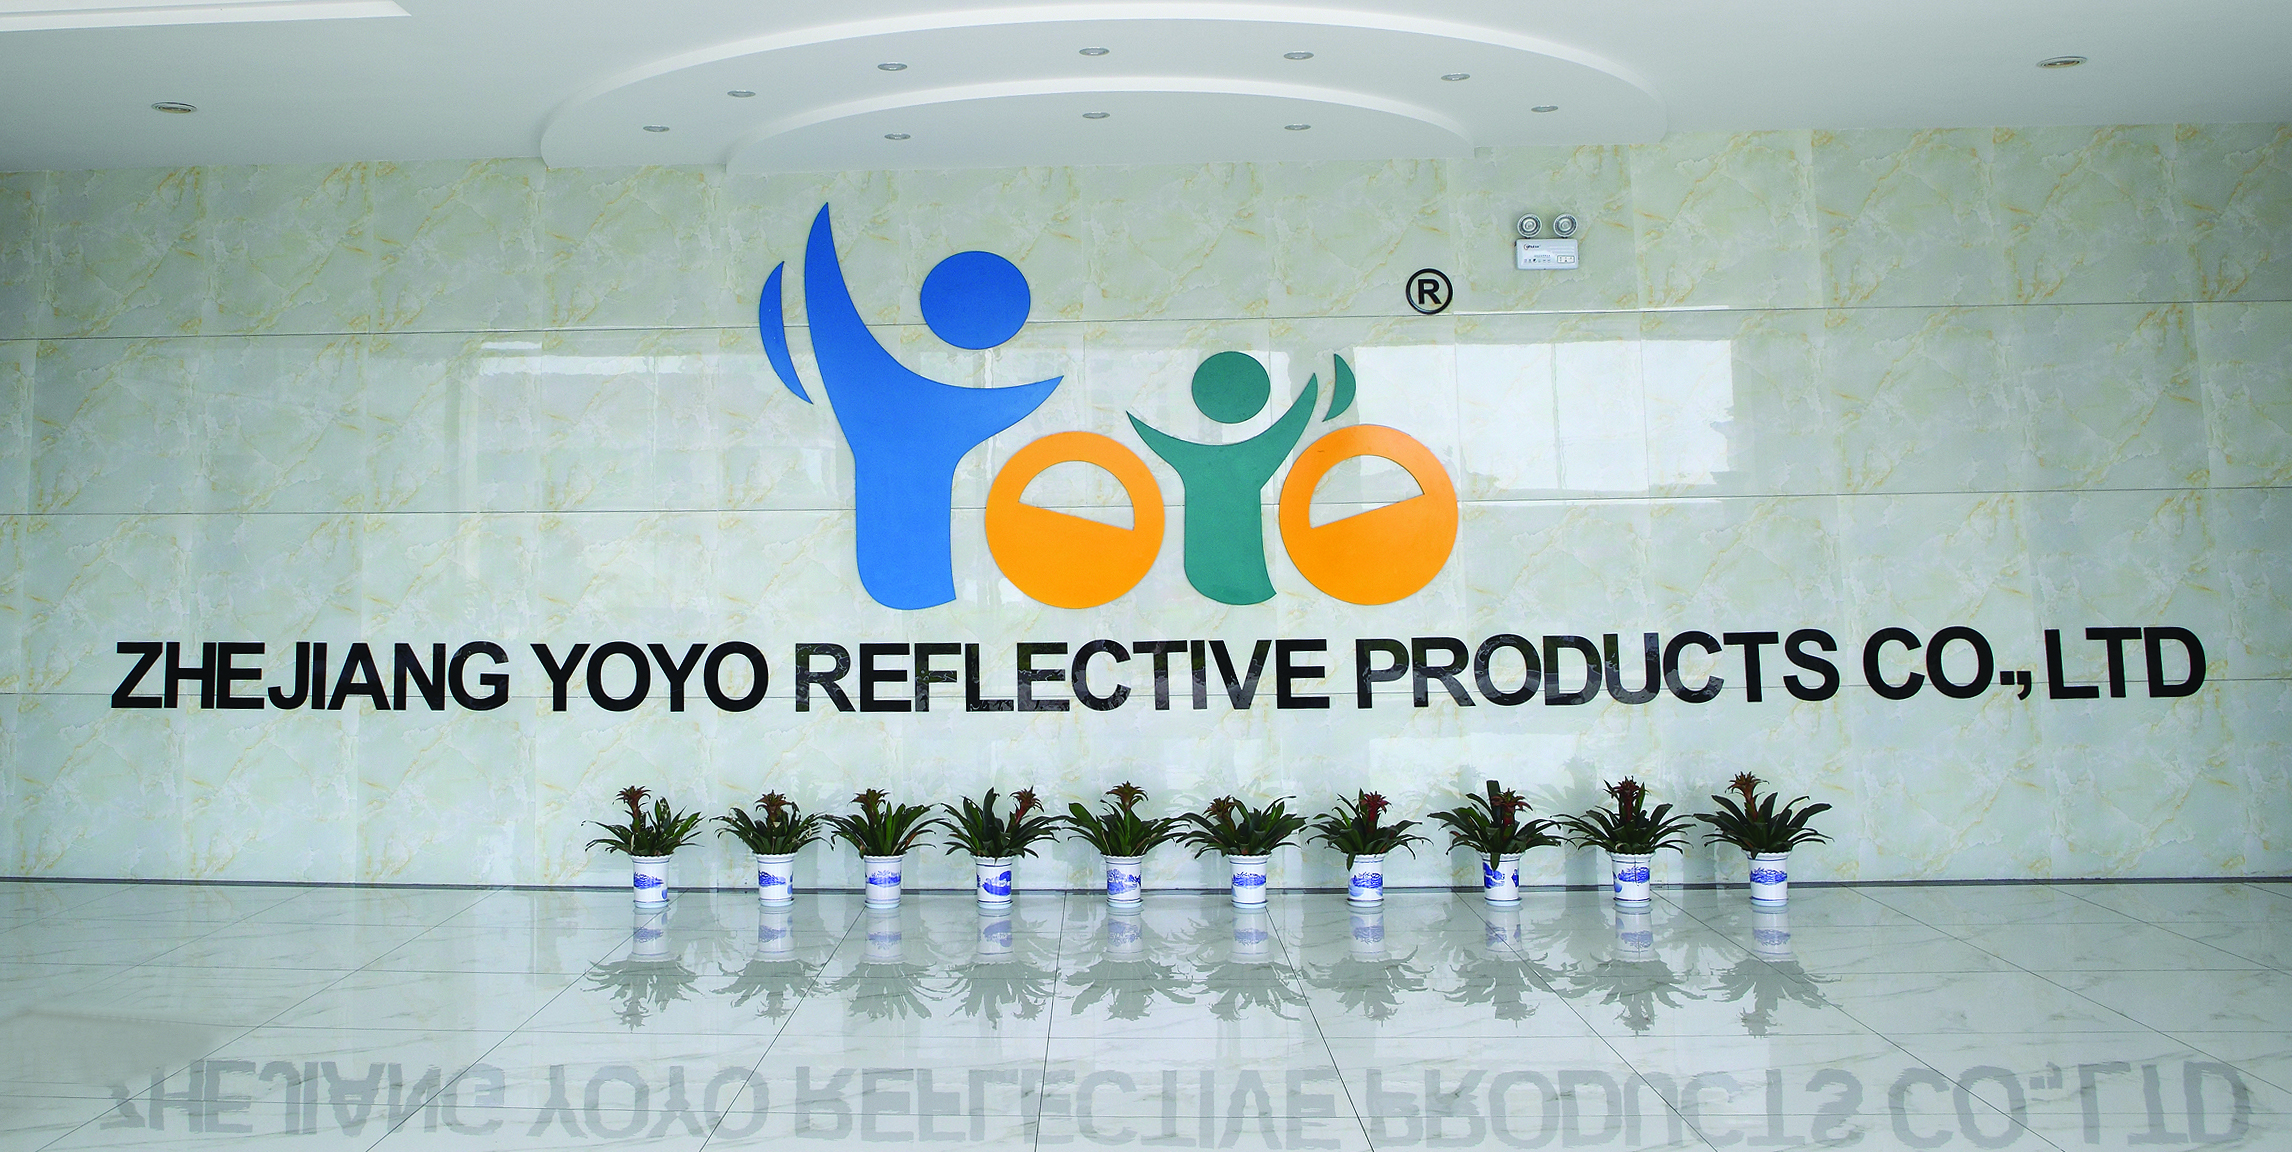 Zhejiang Yoyo Reflective Products Co.,Ltd